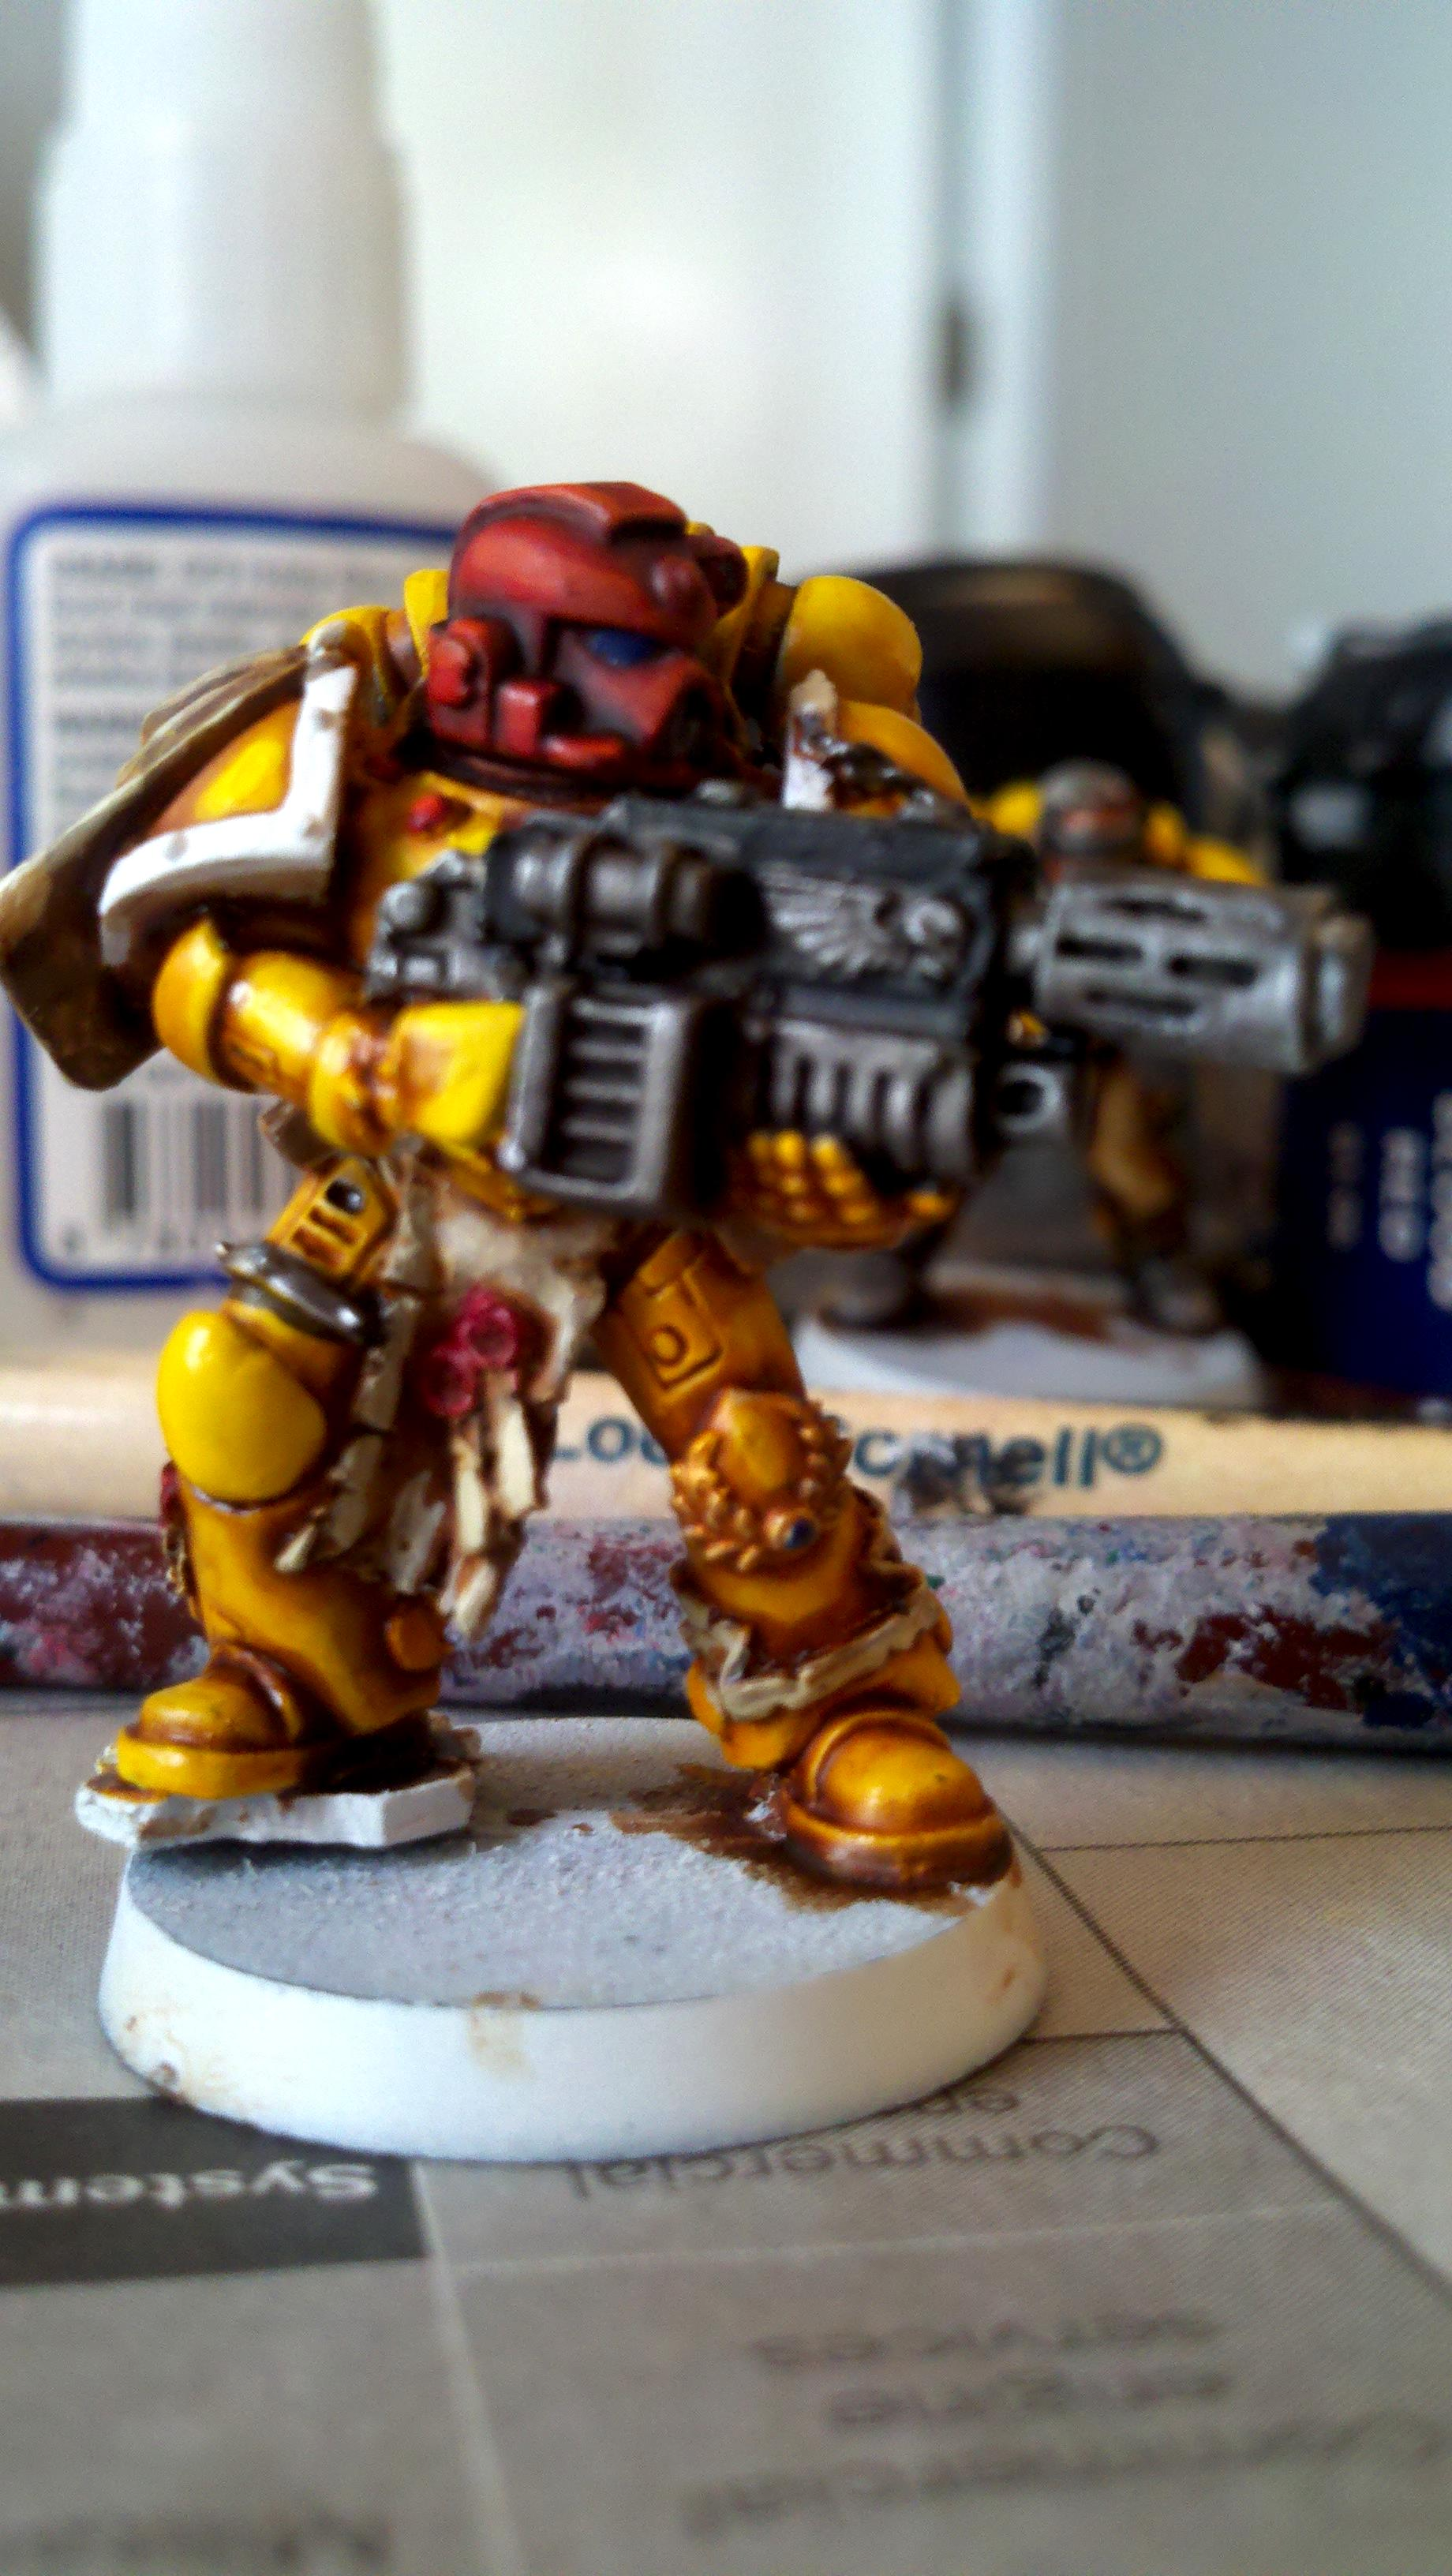 Imperial Fists, Space Marines, Warhammer 40,000